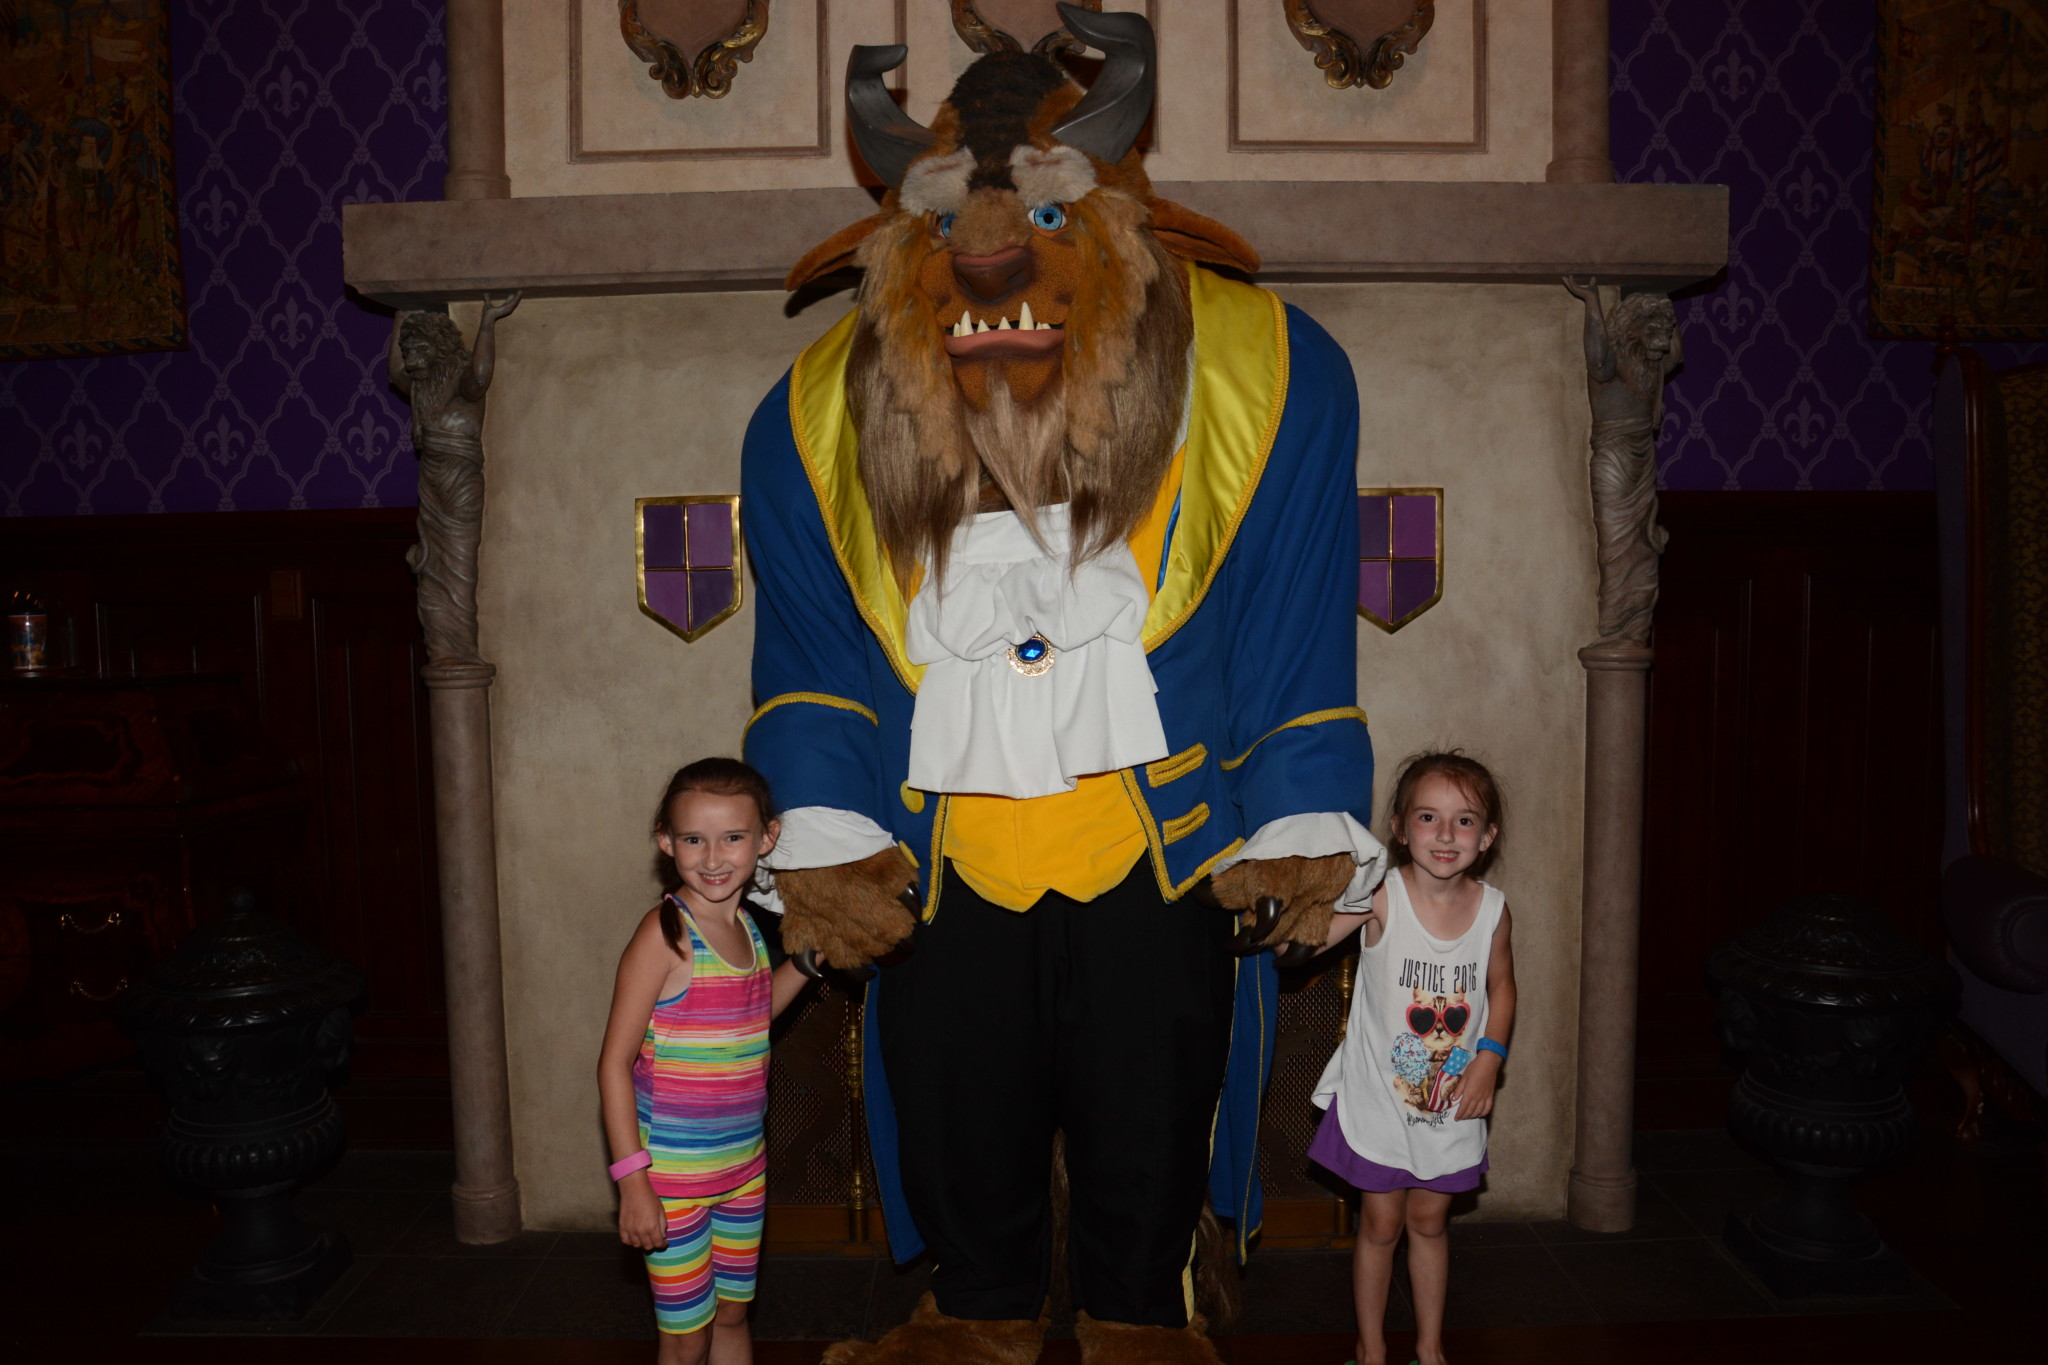 Posing with Beast at Be Our Guest